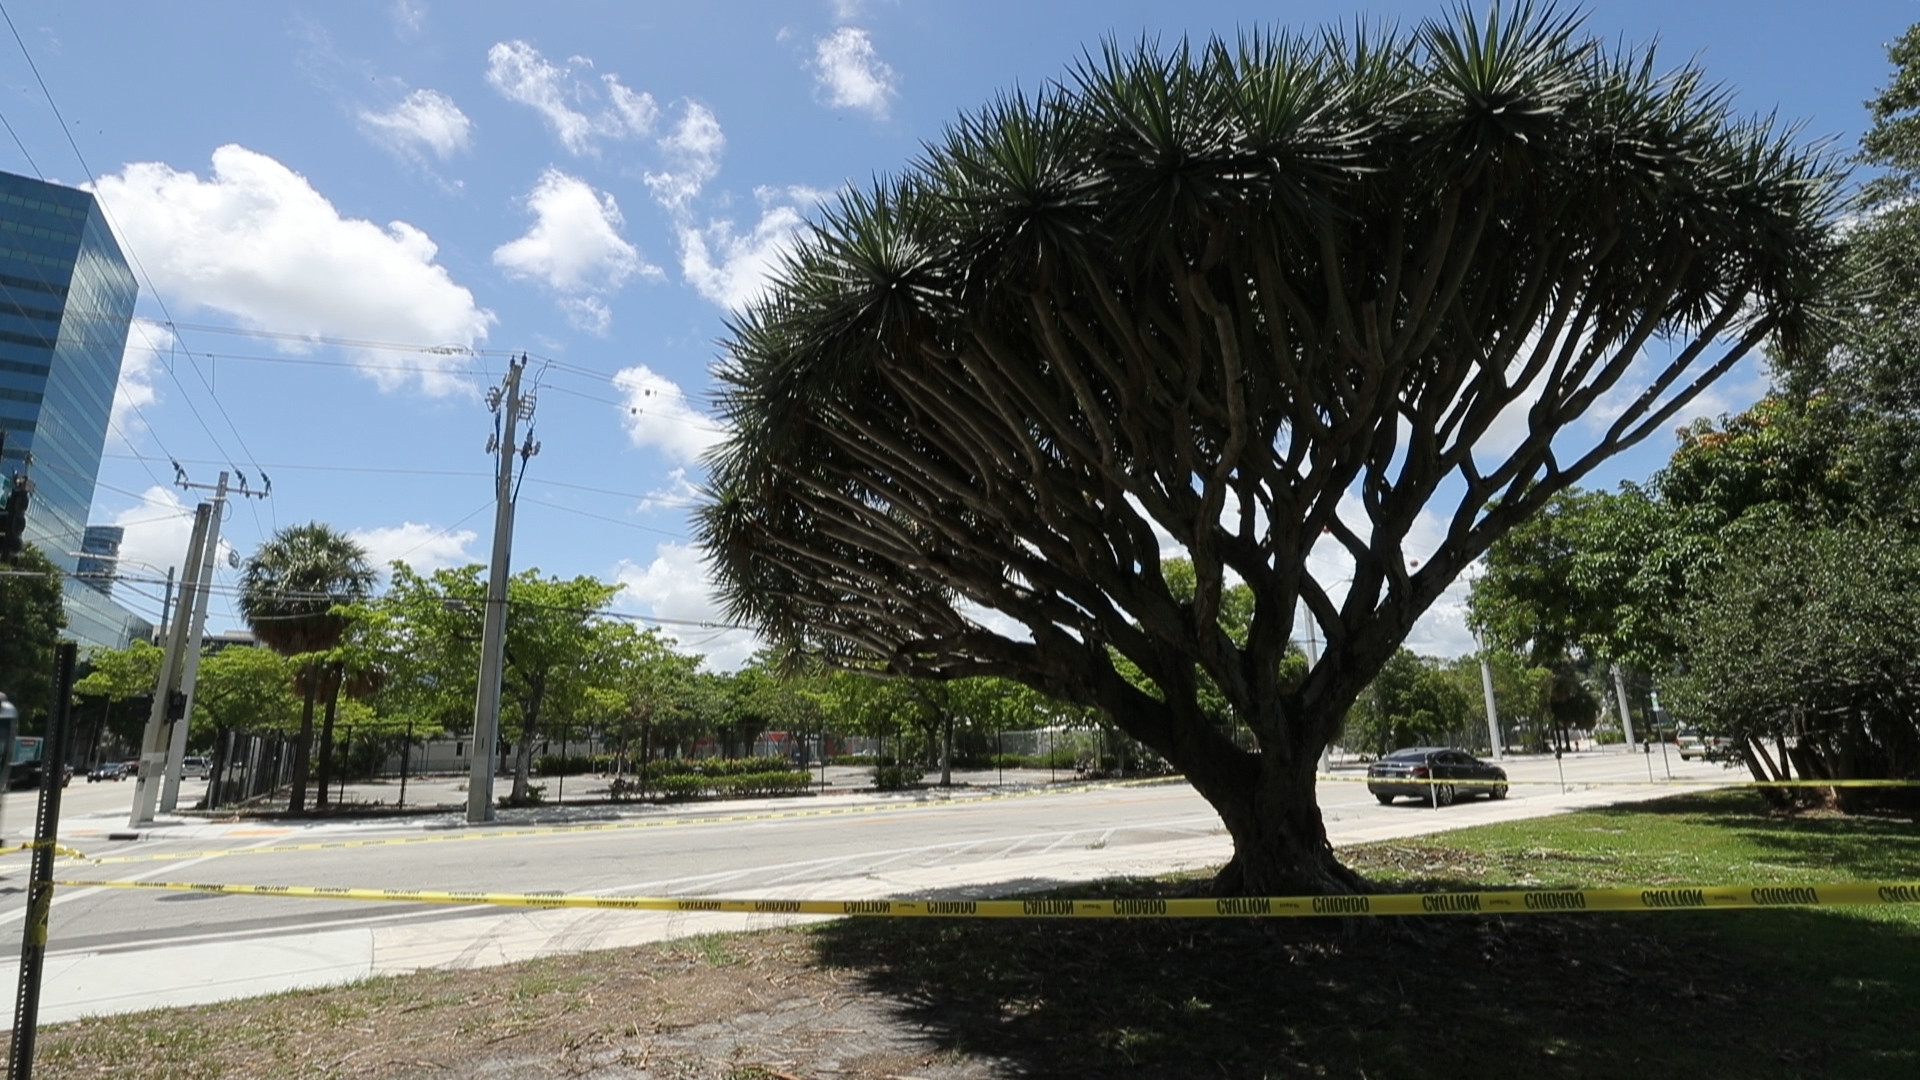 Rare Dragon Blood tree must come down, Fort Lauderdale told